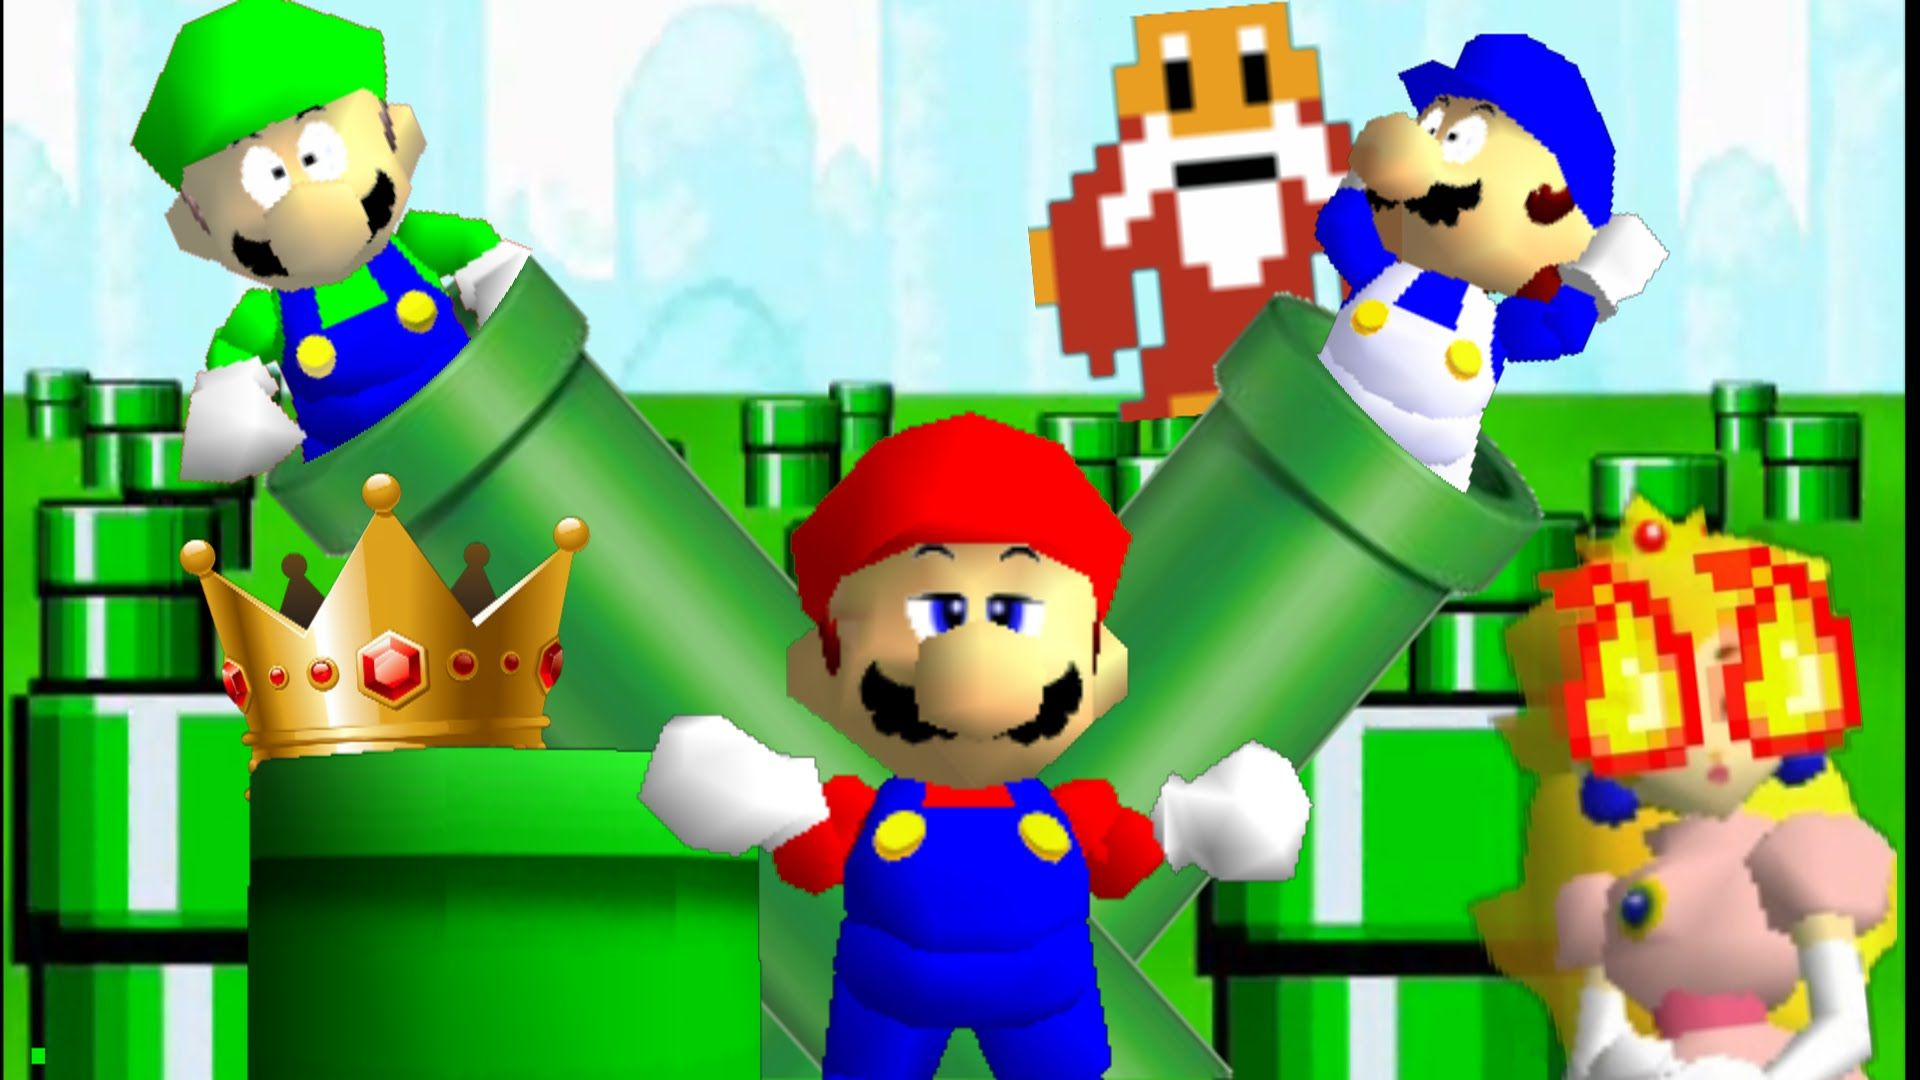 Super Mario 64 Bloopers Series 2 Charcathers Roblox Mario 64 Background Posted By Samantha Cunningham